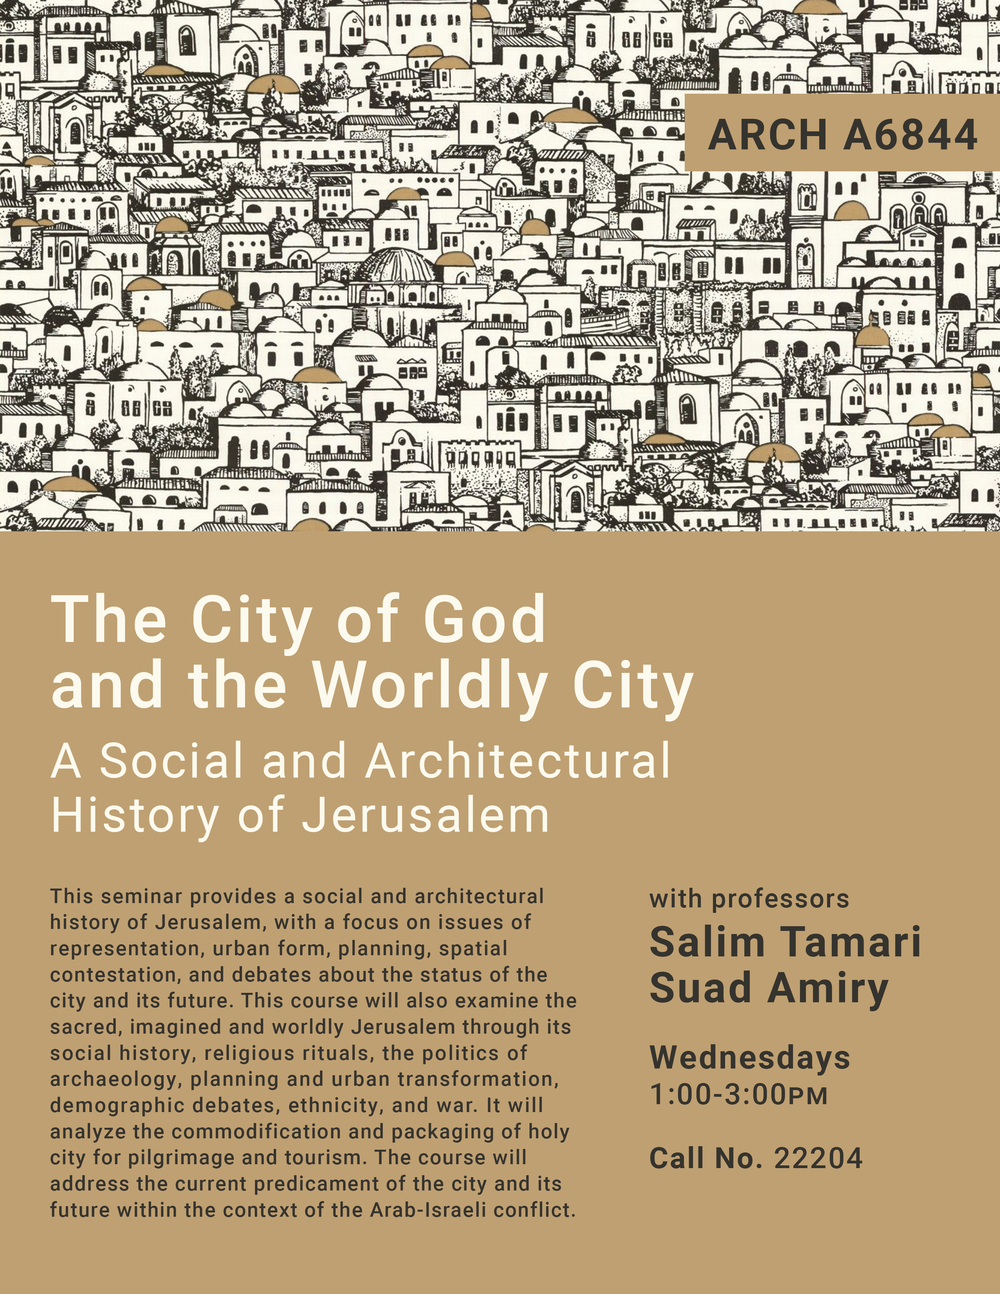 Society Architecture Jerusalem Course Flyer 1-20-2019 (1).png